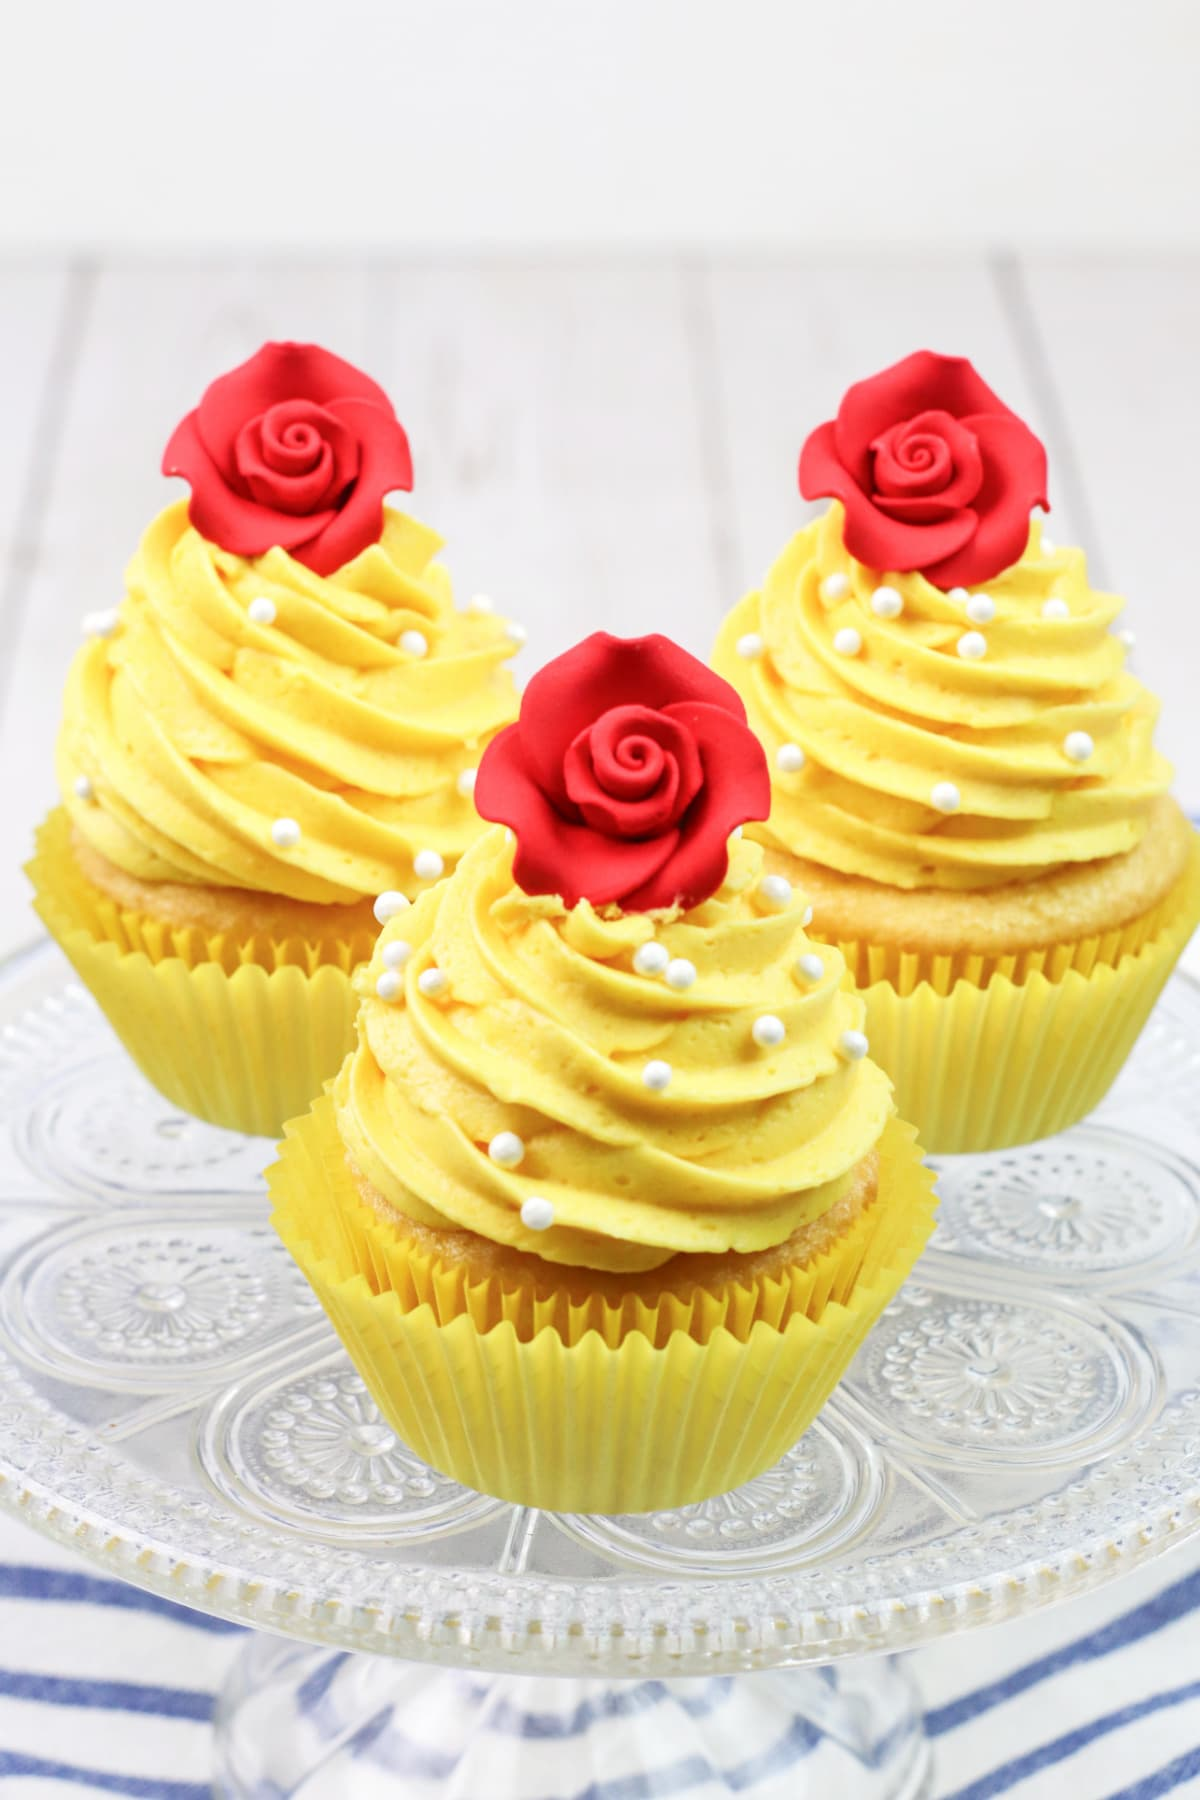 Beauty And The Beast cupcakes on glass plate